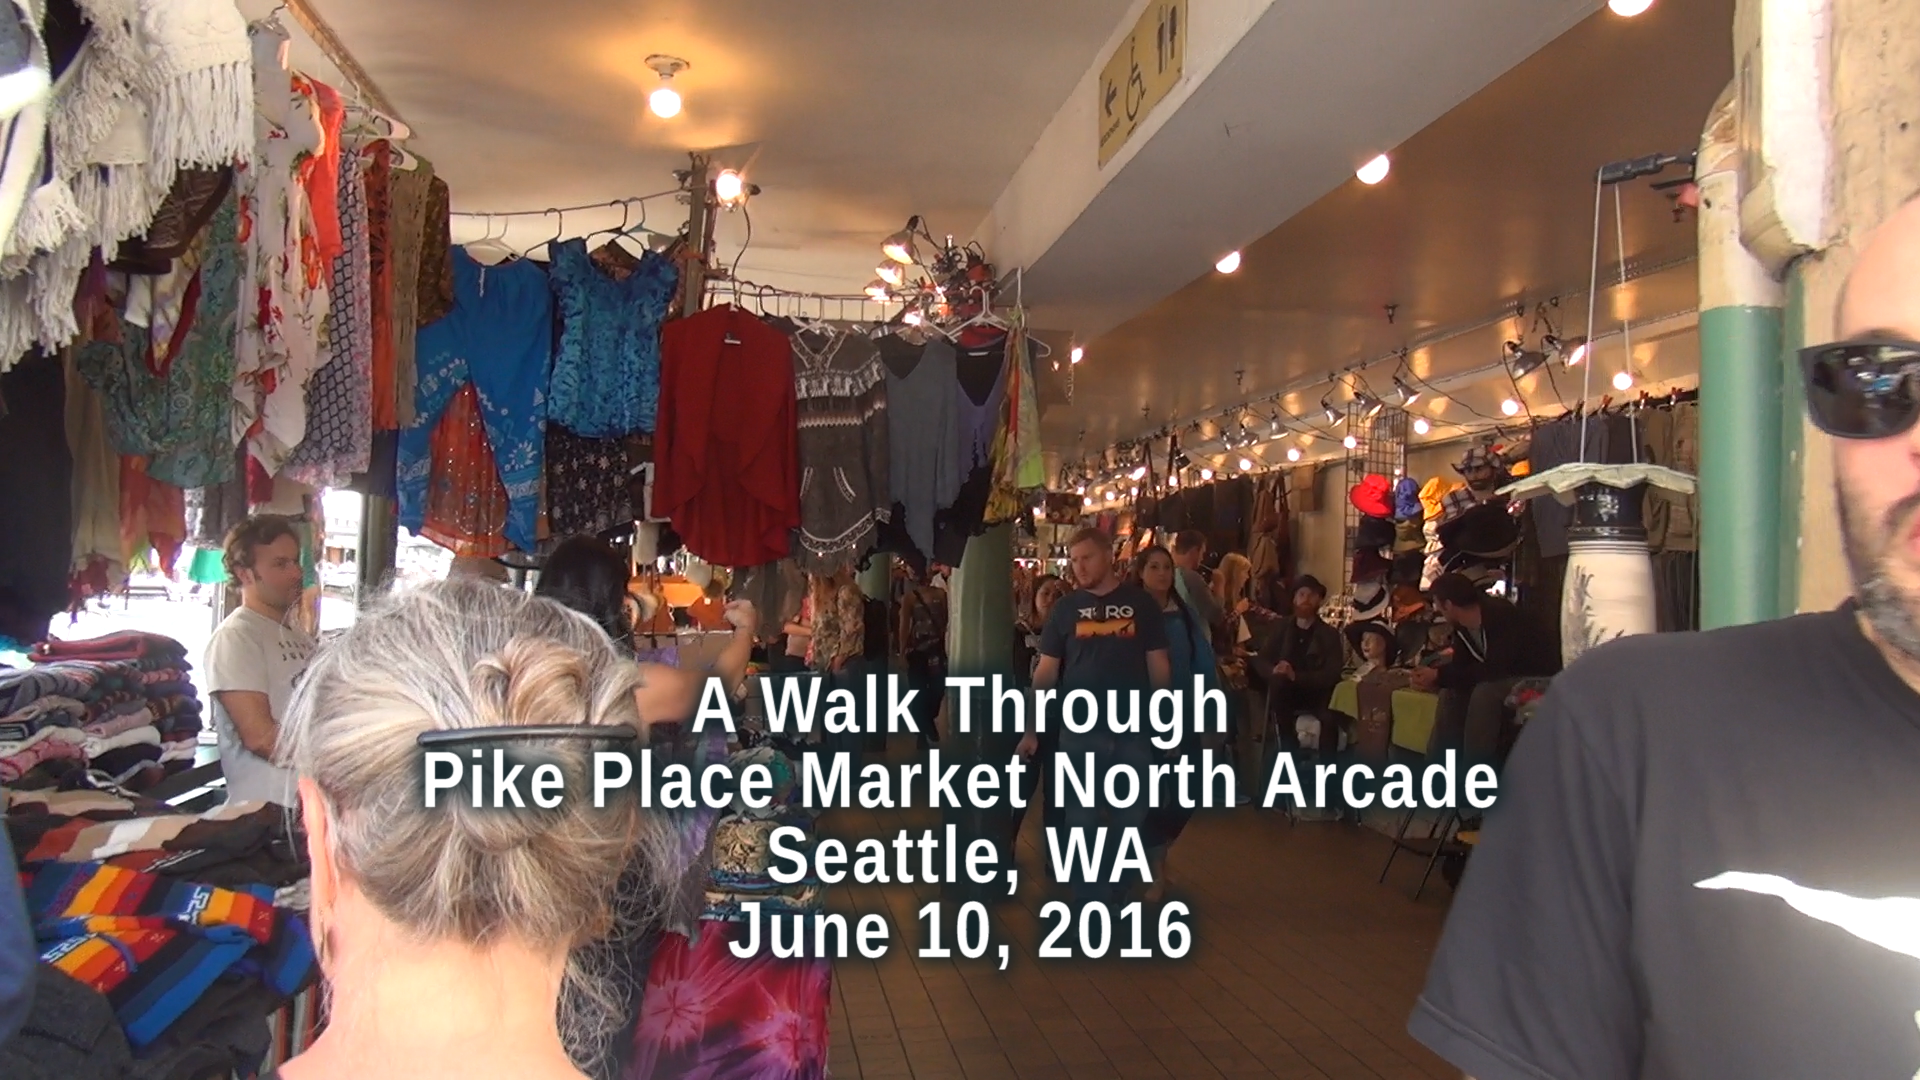 A walk through Pike Place Market